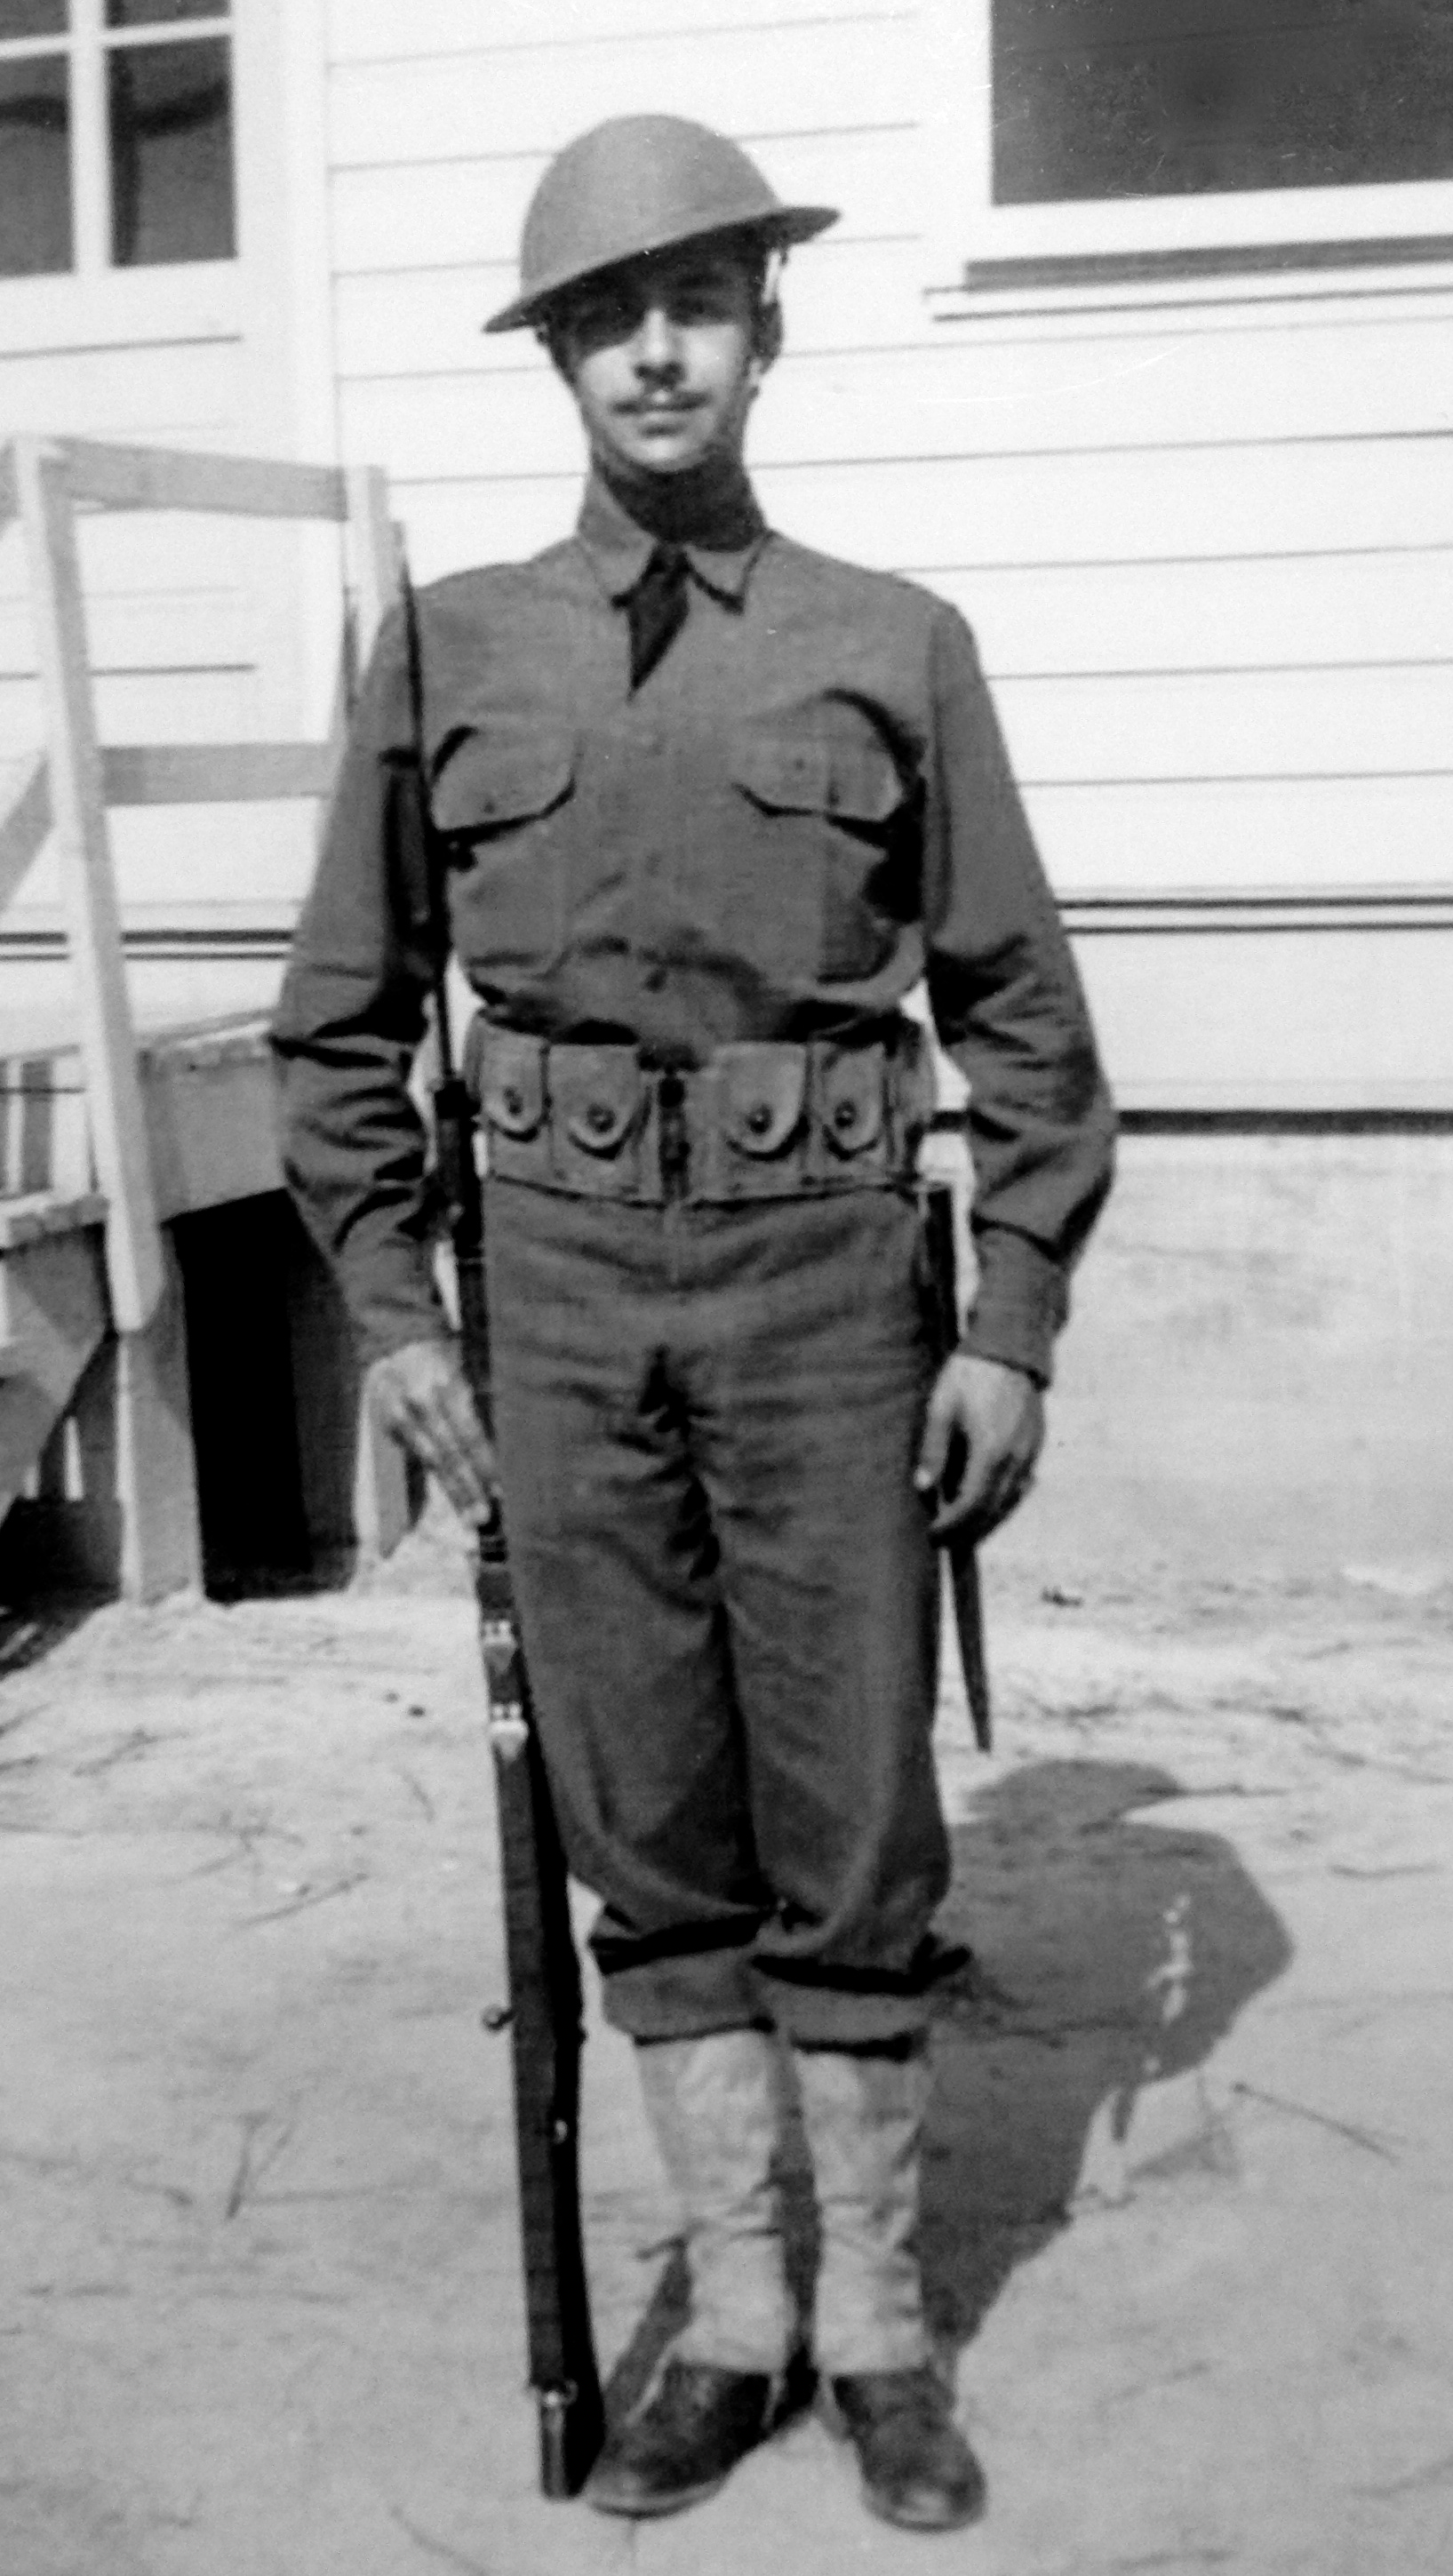 In Uniform at Fort Bragg - 1942